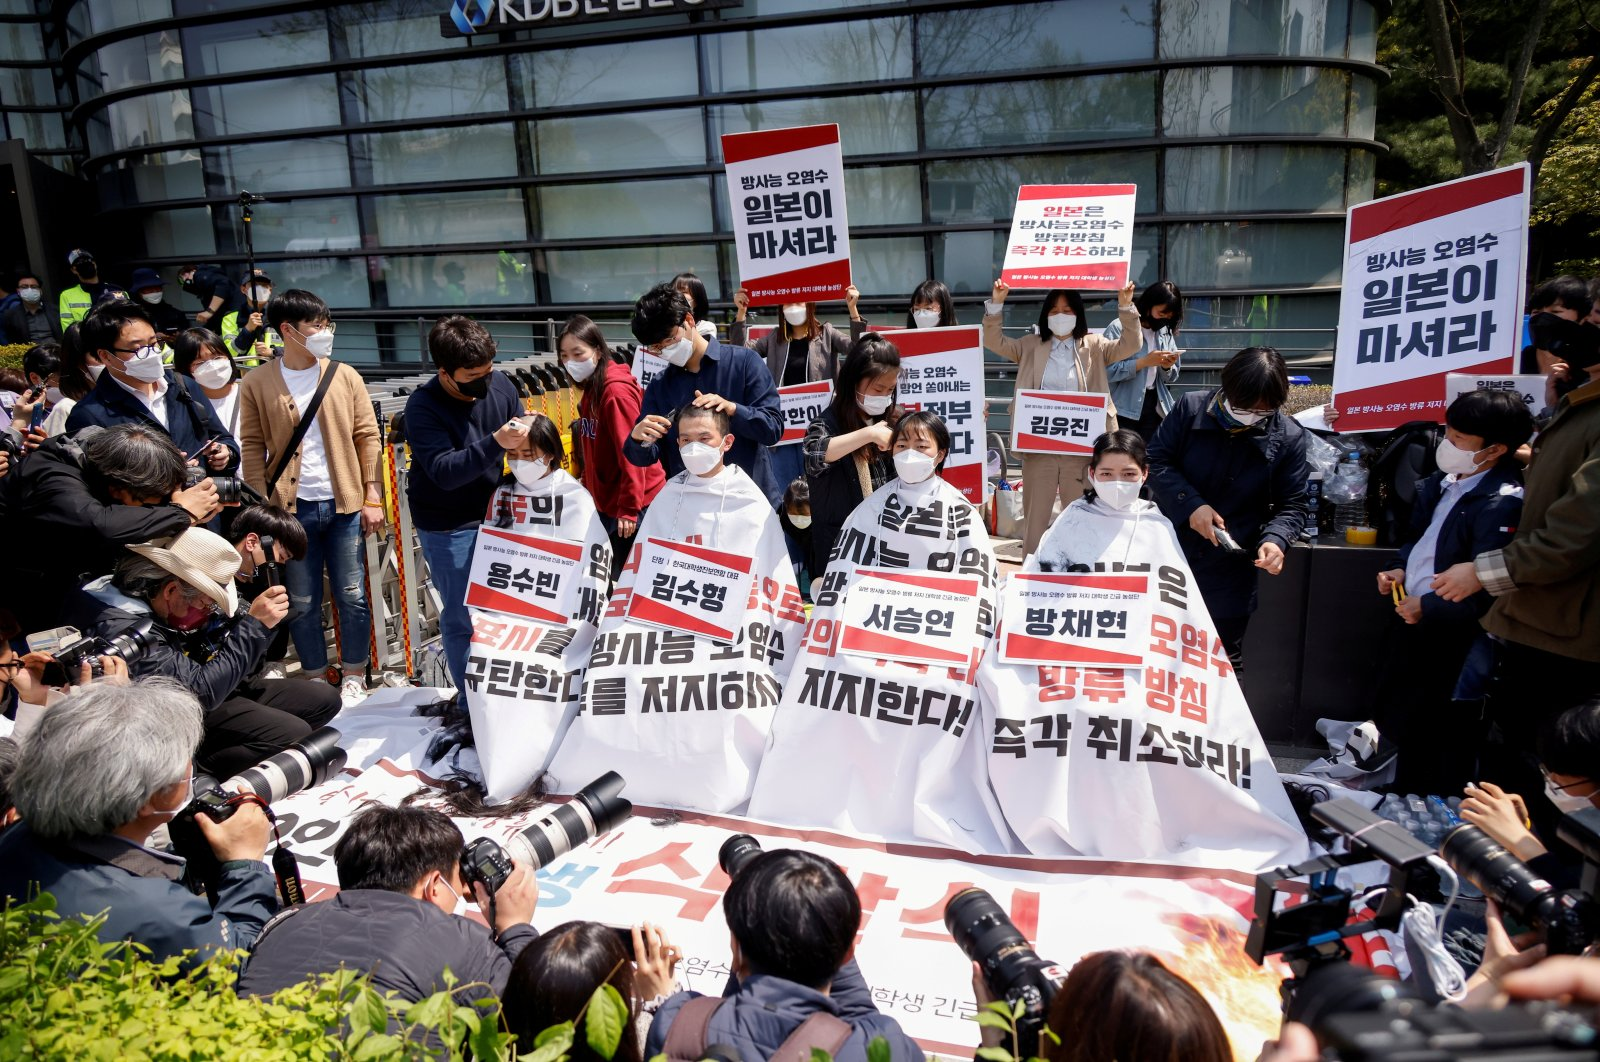 South Korea university students get their heads shaved during a protest against Japan's decision to release contaminated water from its crippled Fukushima nuclear plant into the sea, in front of the Japanese embassy, in Seoul, South Korea, April 20, 2021.  (REUTERS Photo)